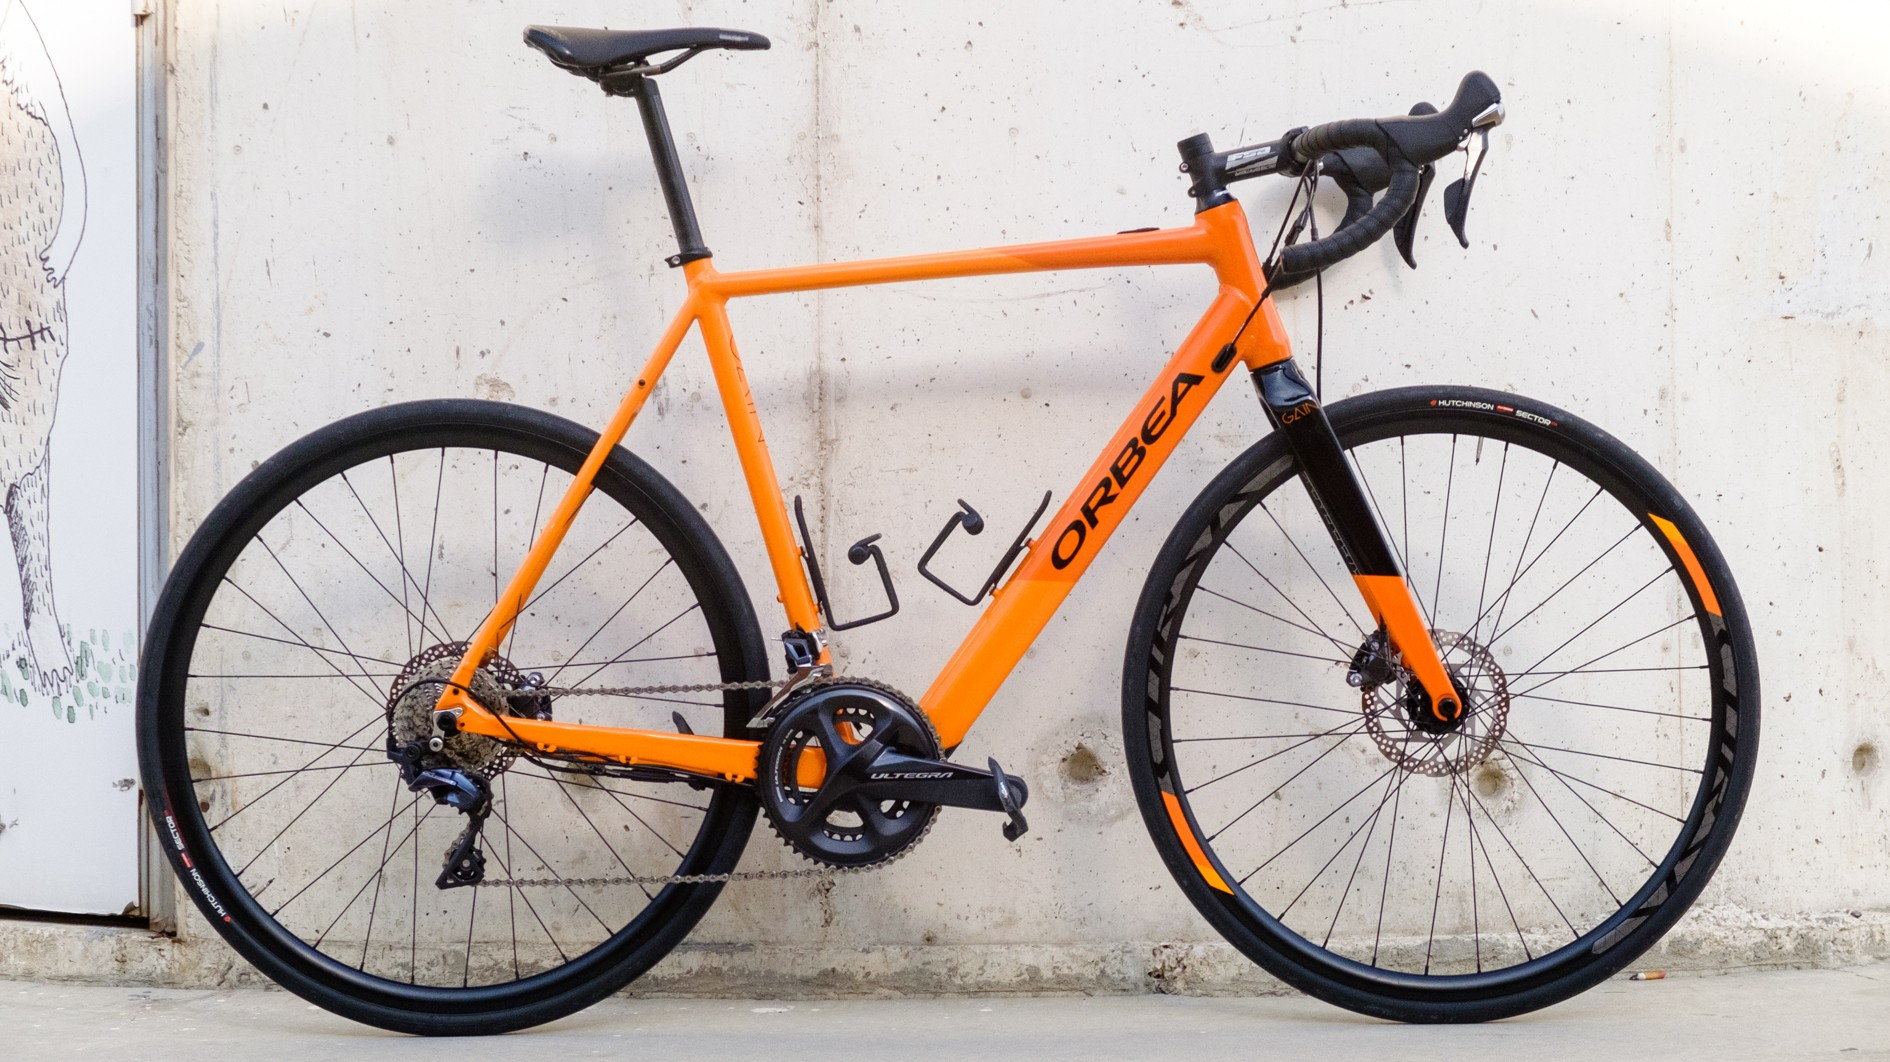 The Orbea Gain is an electric road bike with a hub-based X35 motor